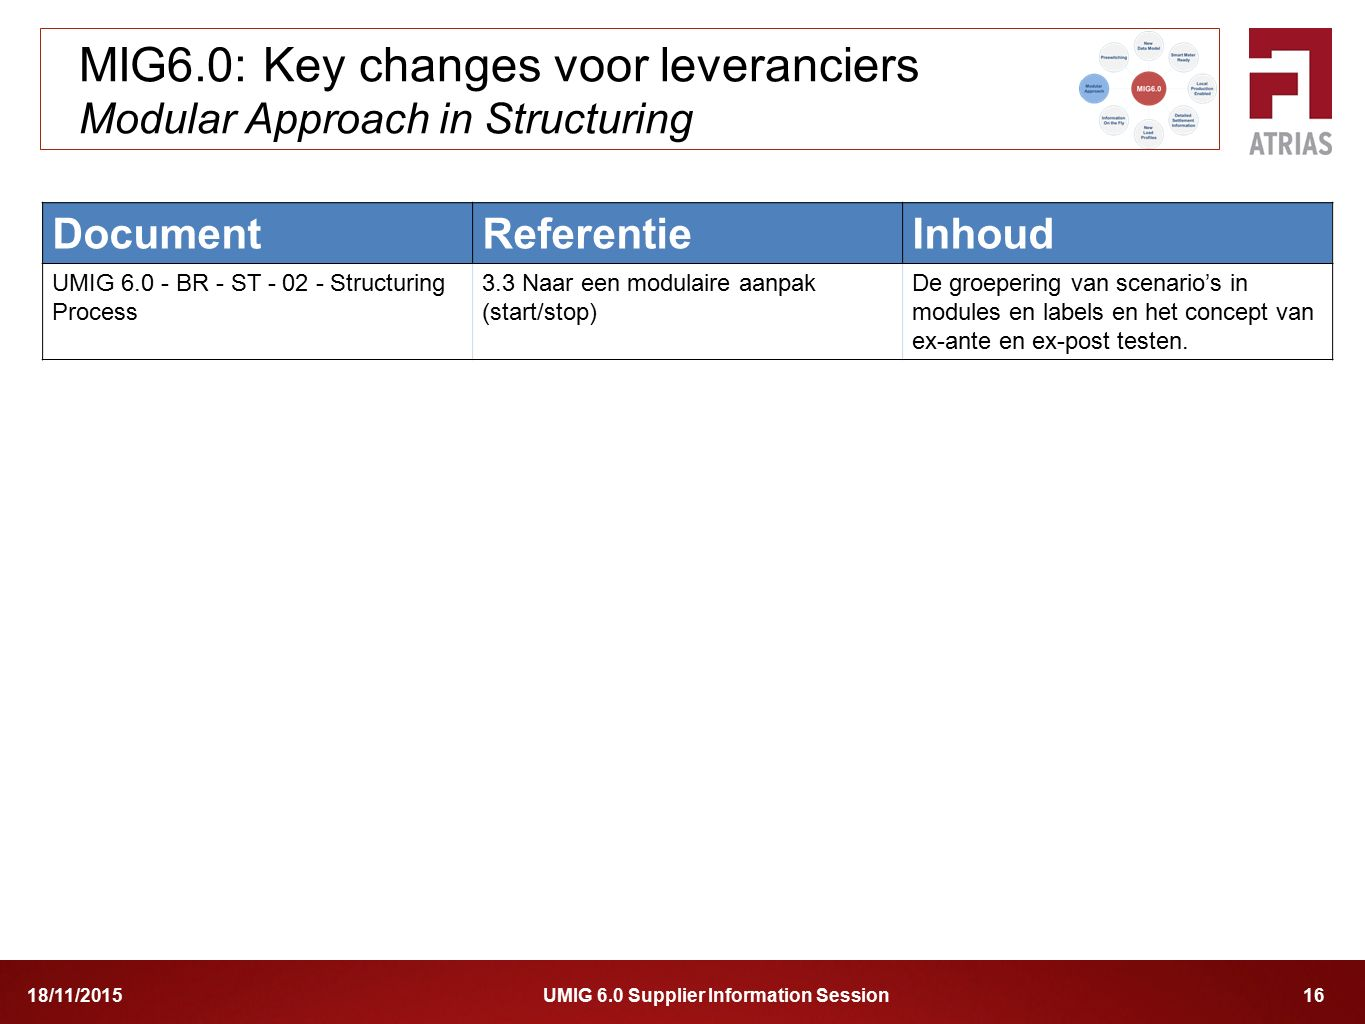 MIG6.0: Key changes voor leveranciers Modular Approach in Structuring